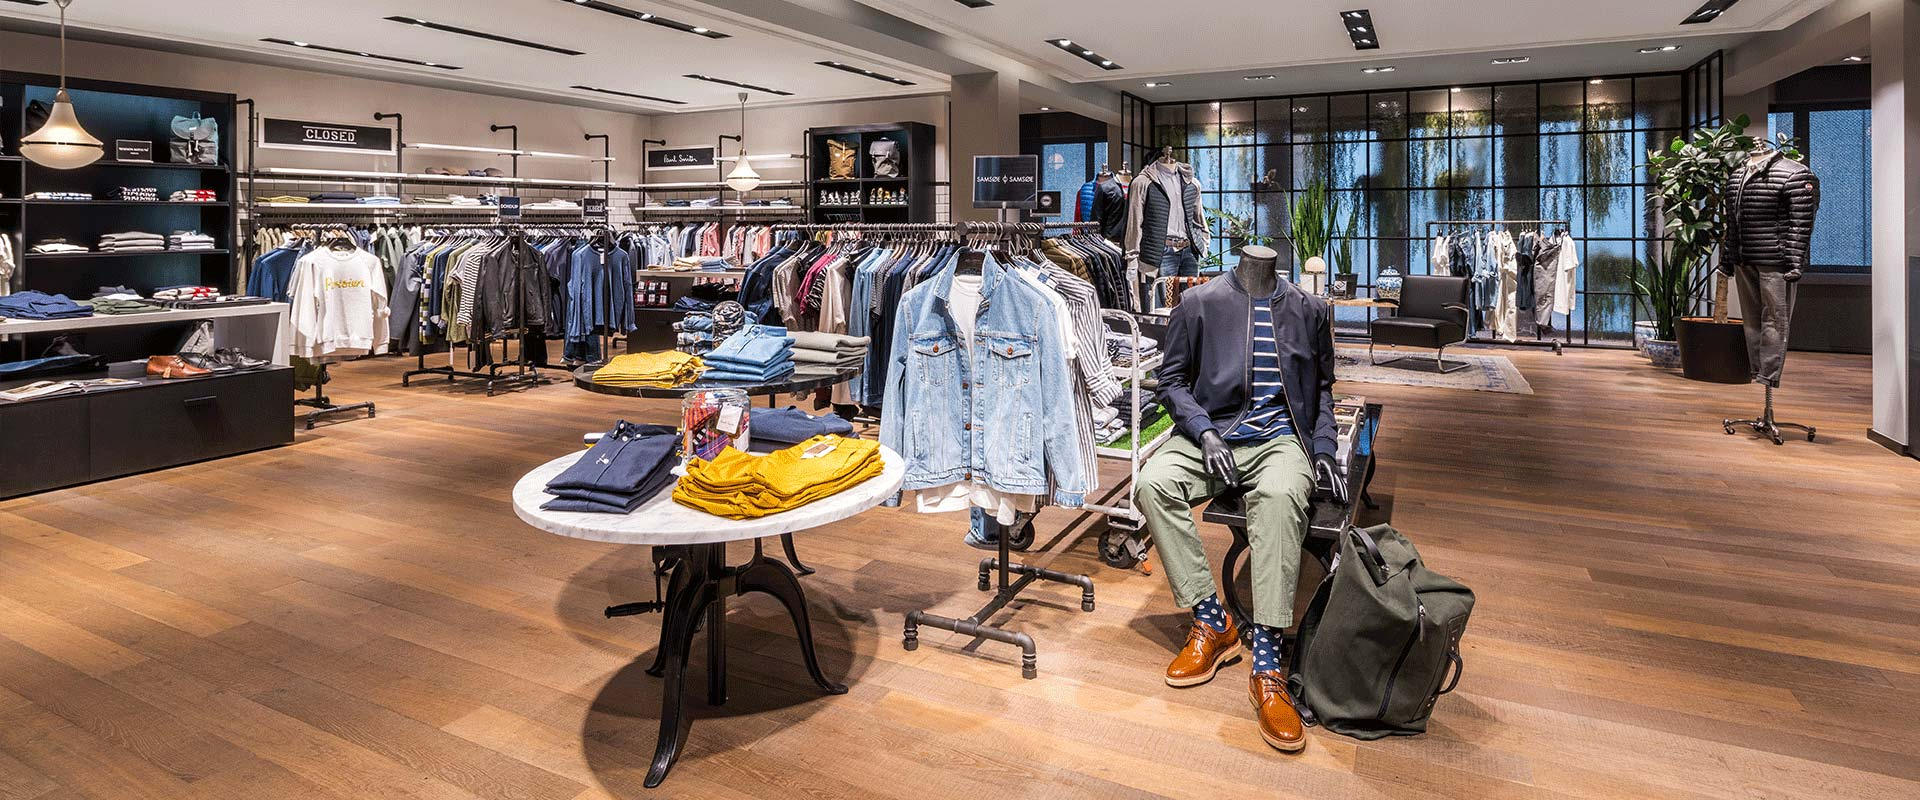 Fashion store lighting - LED lighting for shops by TRILUX